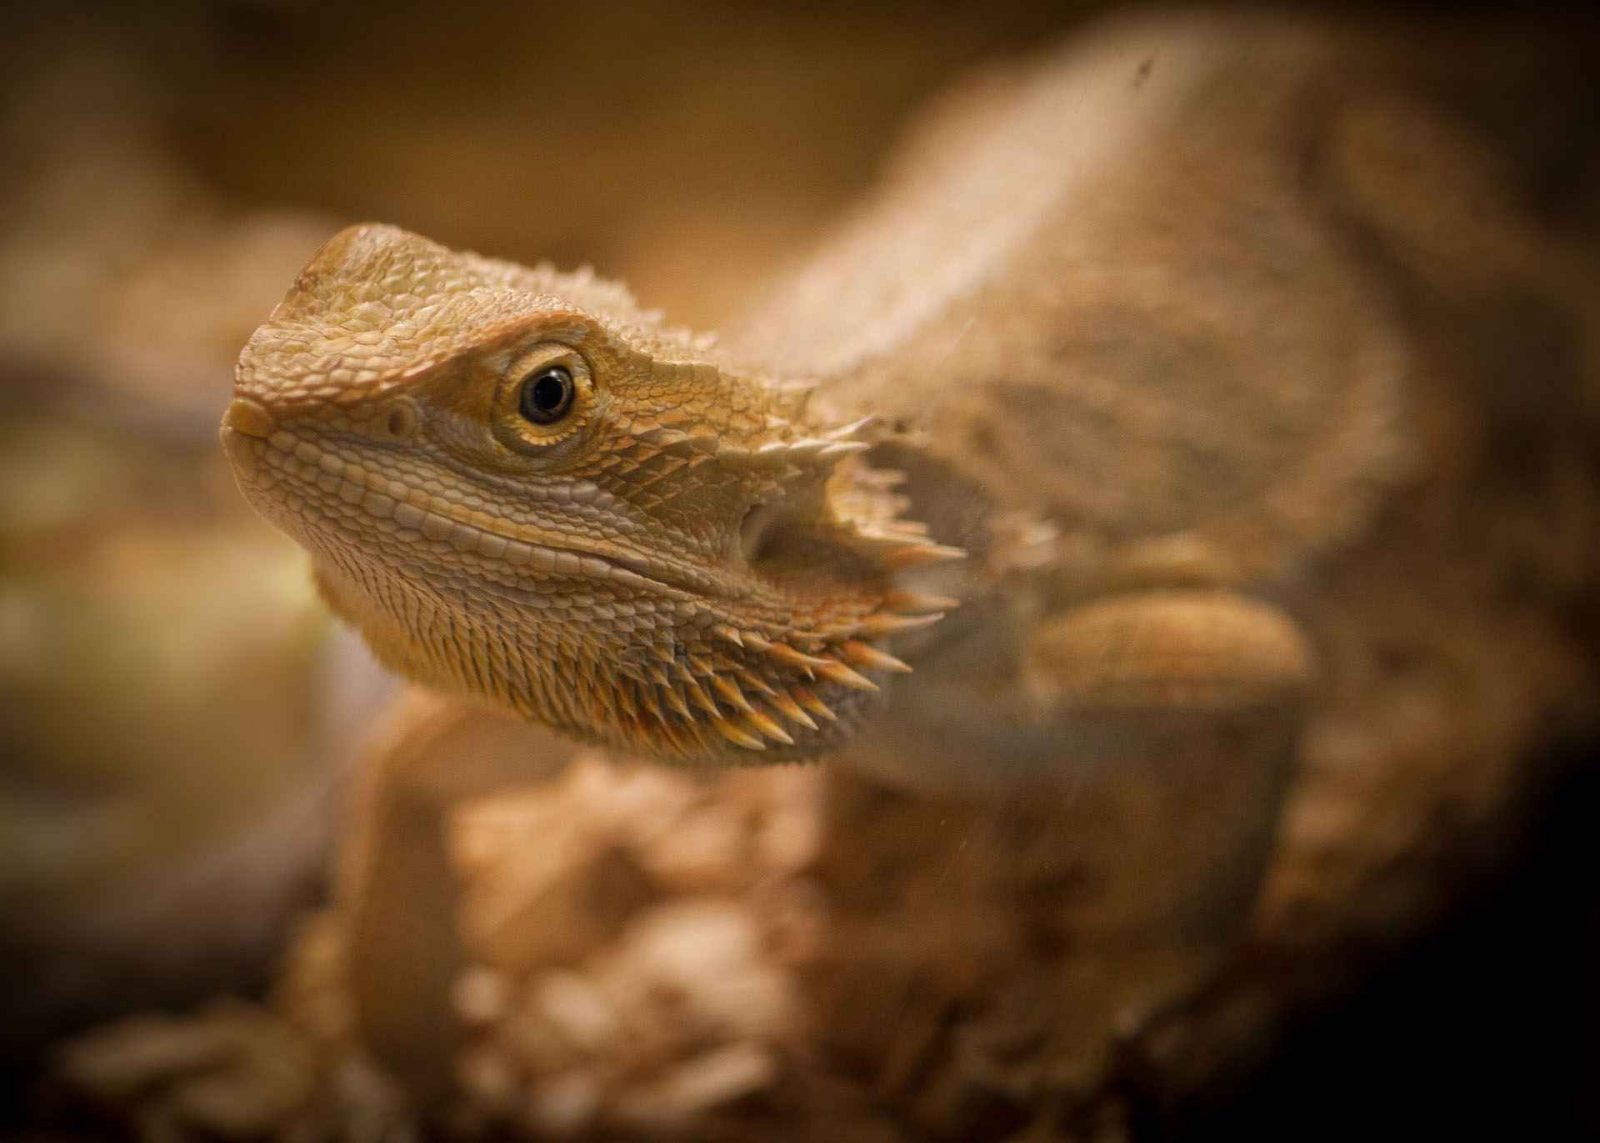 Portrait of a bearded dragon in artificial light. Let there be Light Photography Competition entry on Falcondale Life blog. Win with Urban Cottage Industries by showcasing one natural light image and one artificial light image. #Lettherebelight